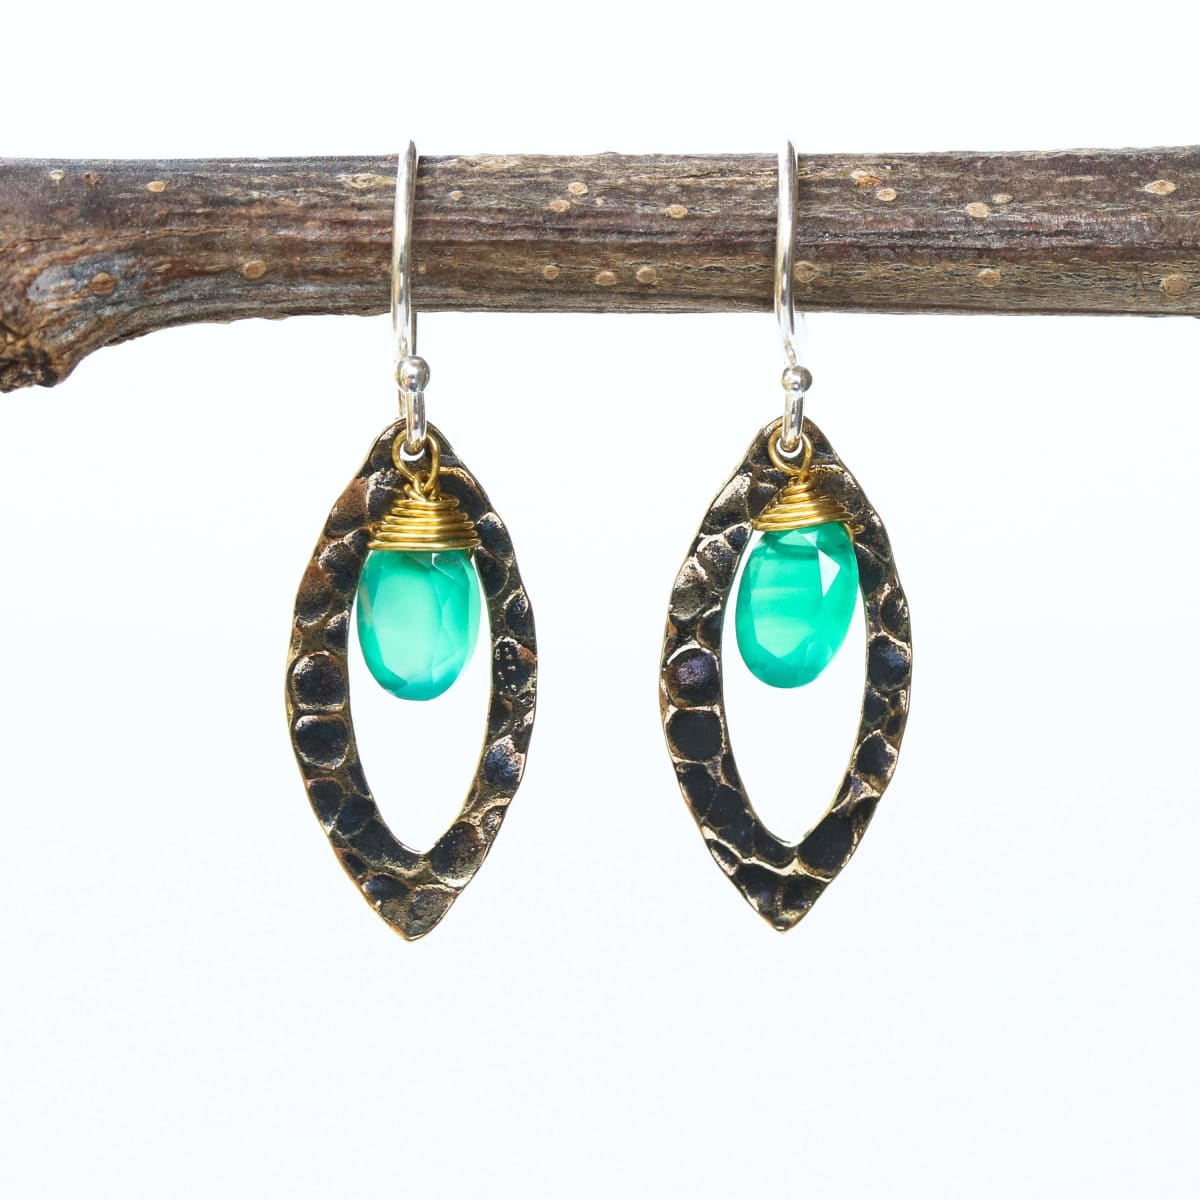 Green onyx earrings and oxidized brass marquis shape in hammer textured on sterling silver hook style - by Metal Studio Jewelry